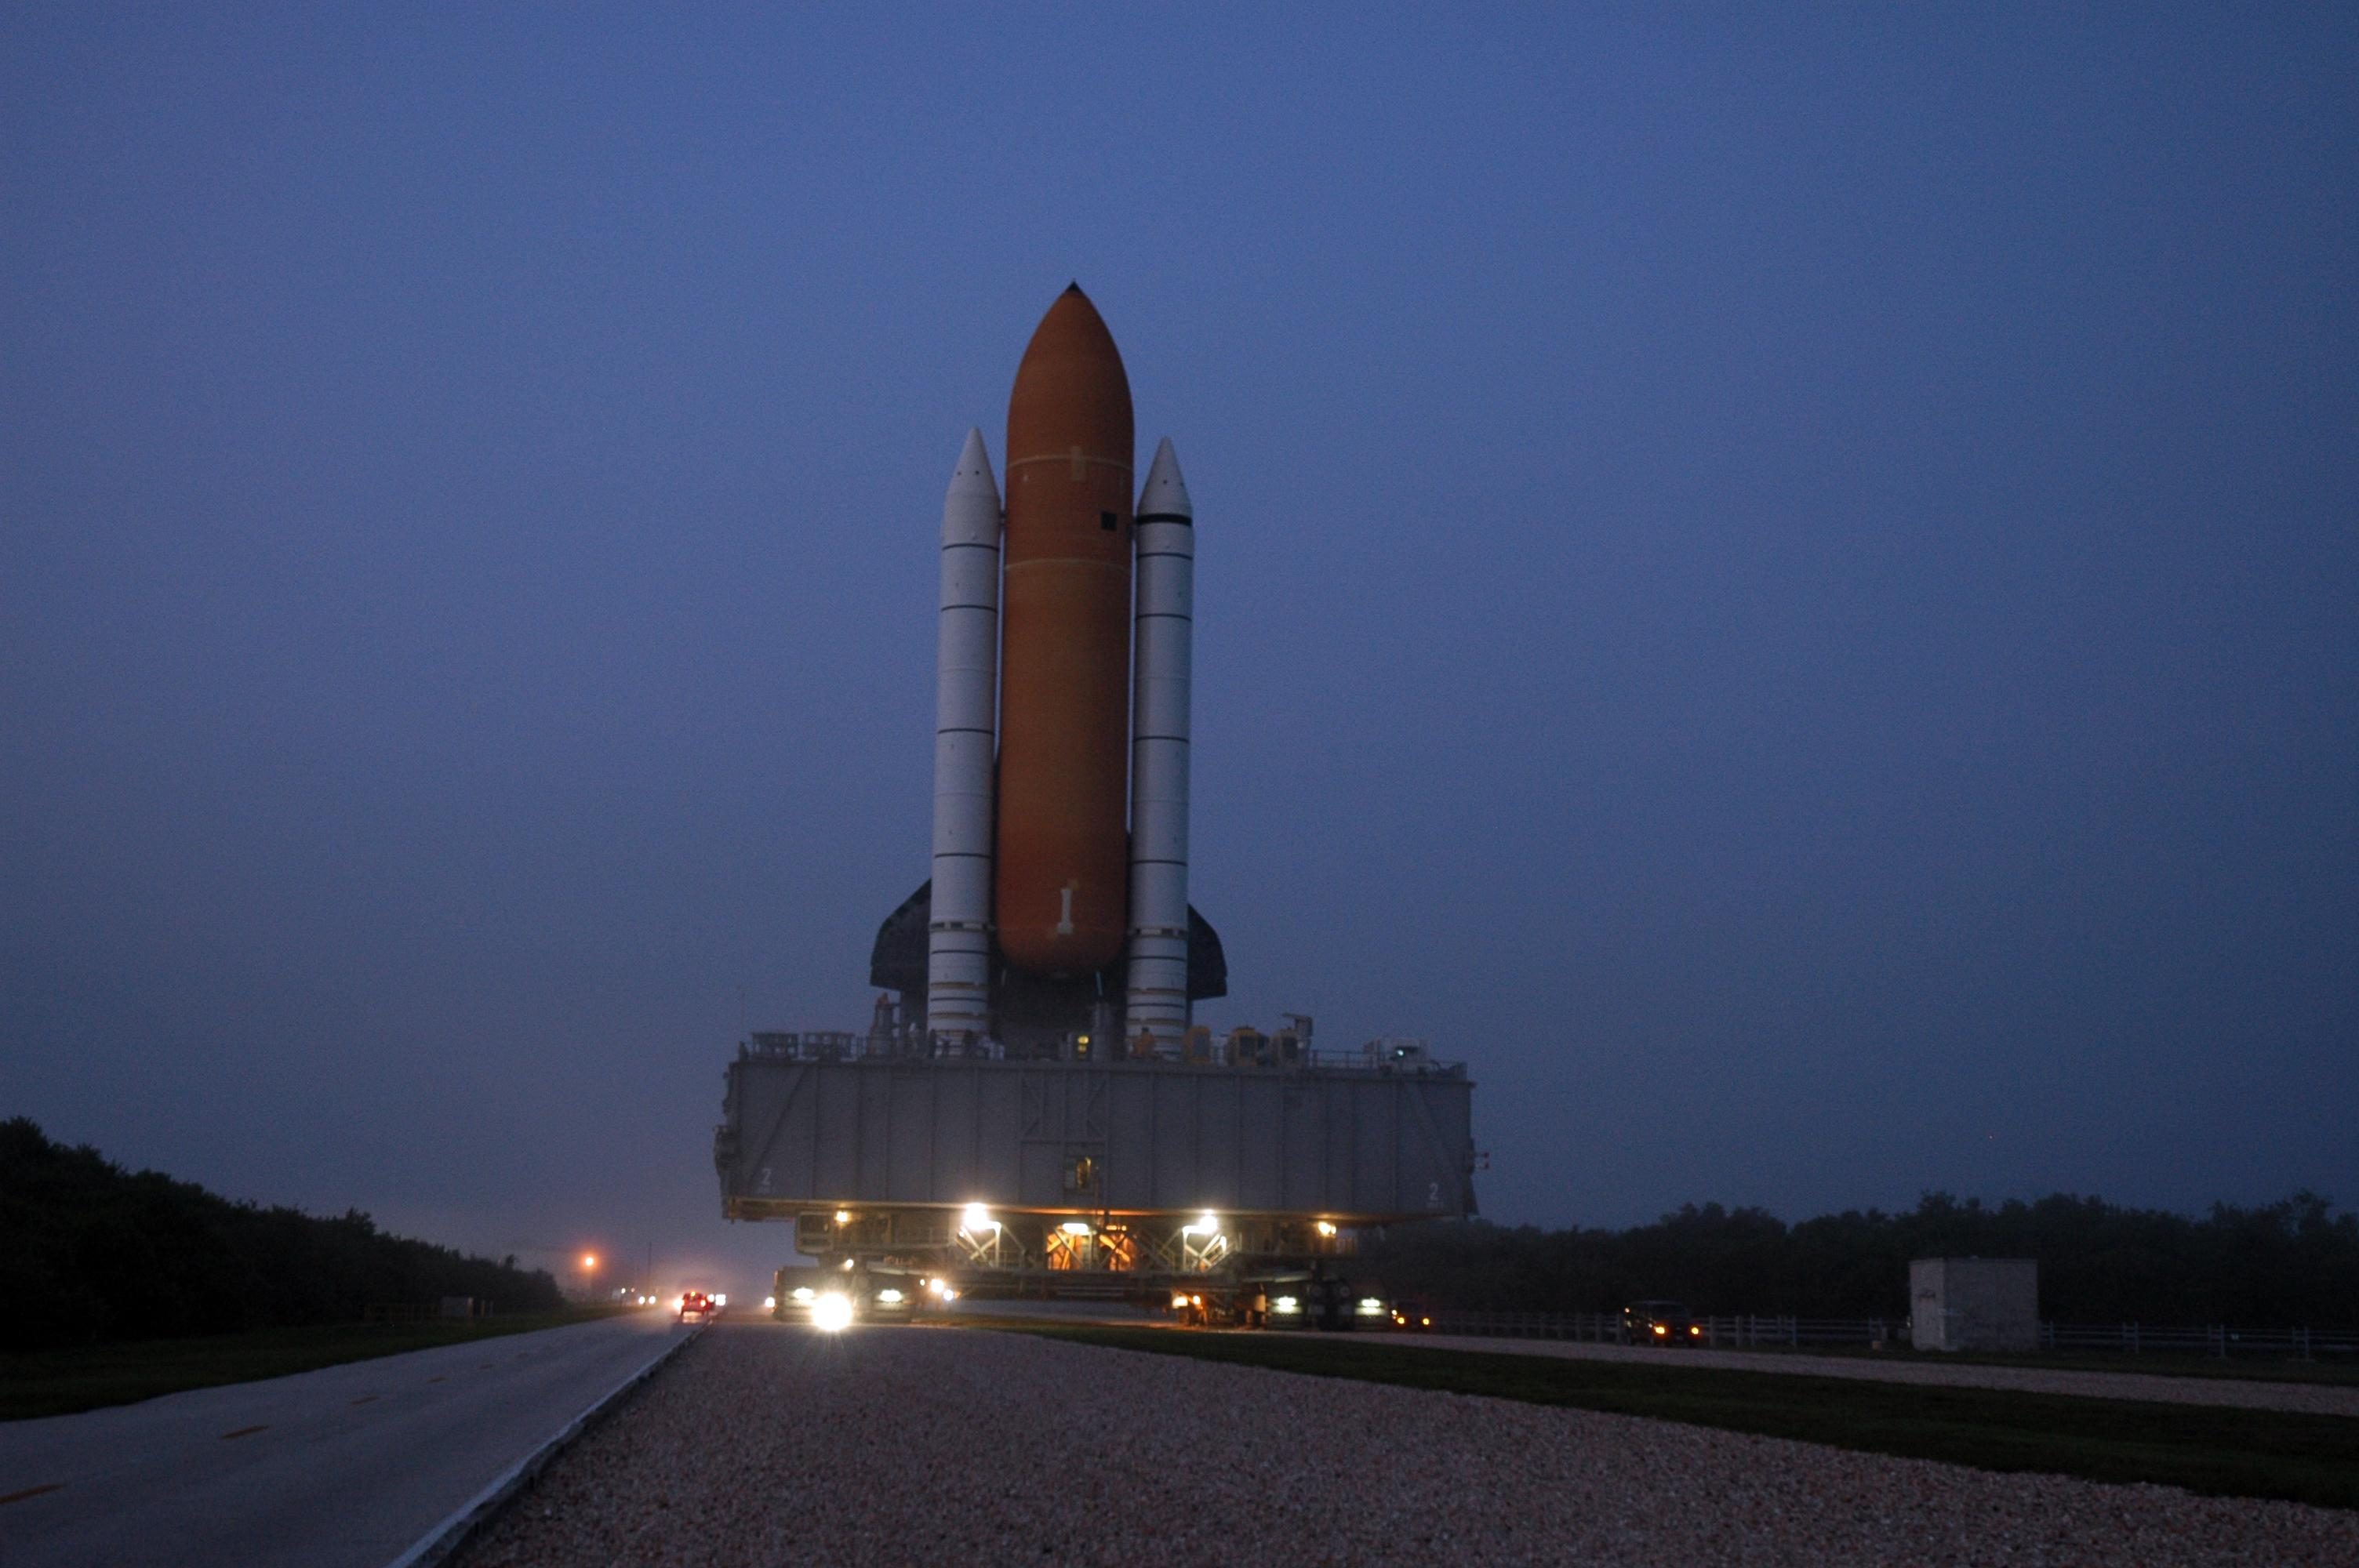 NASA - Rollout of Space Shuttle Atlantis for STS-115